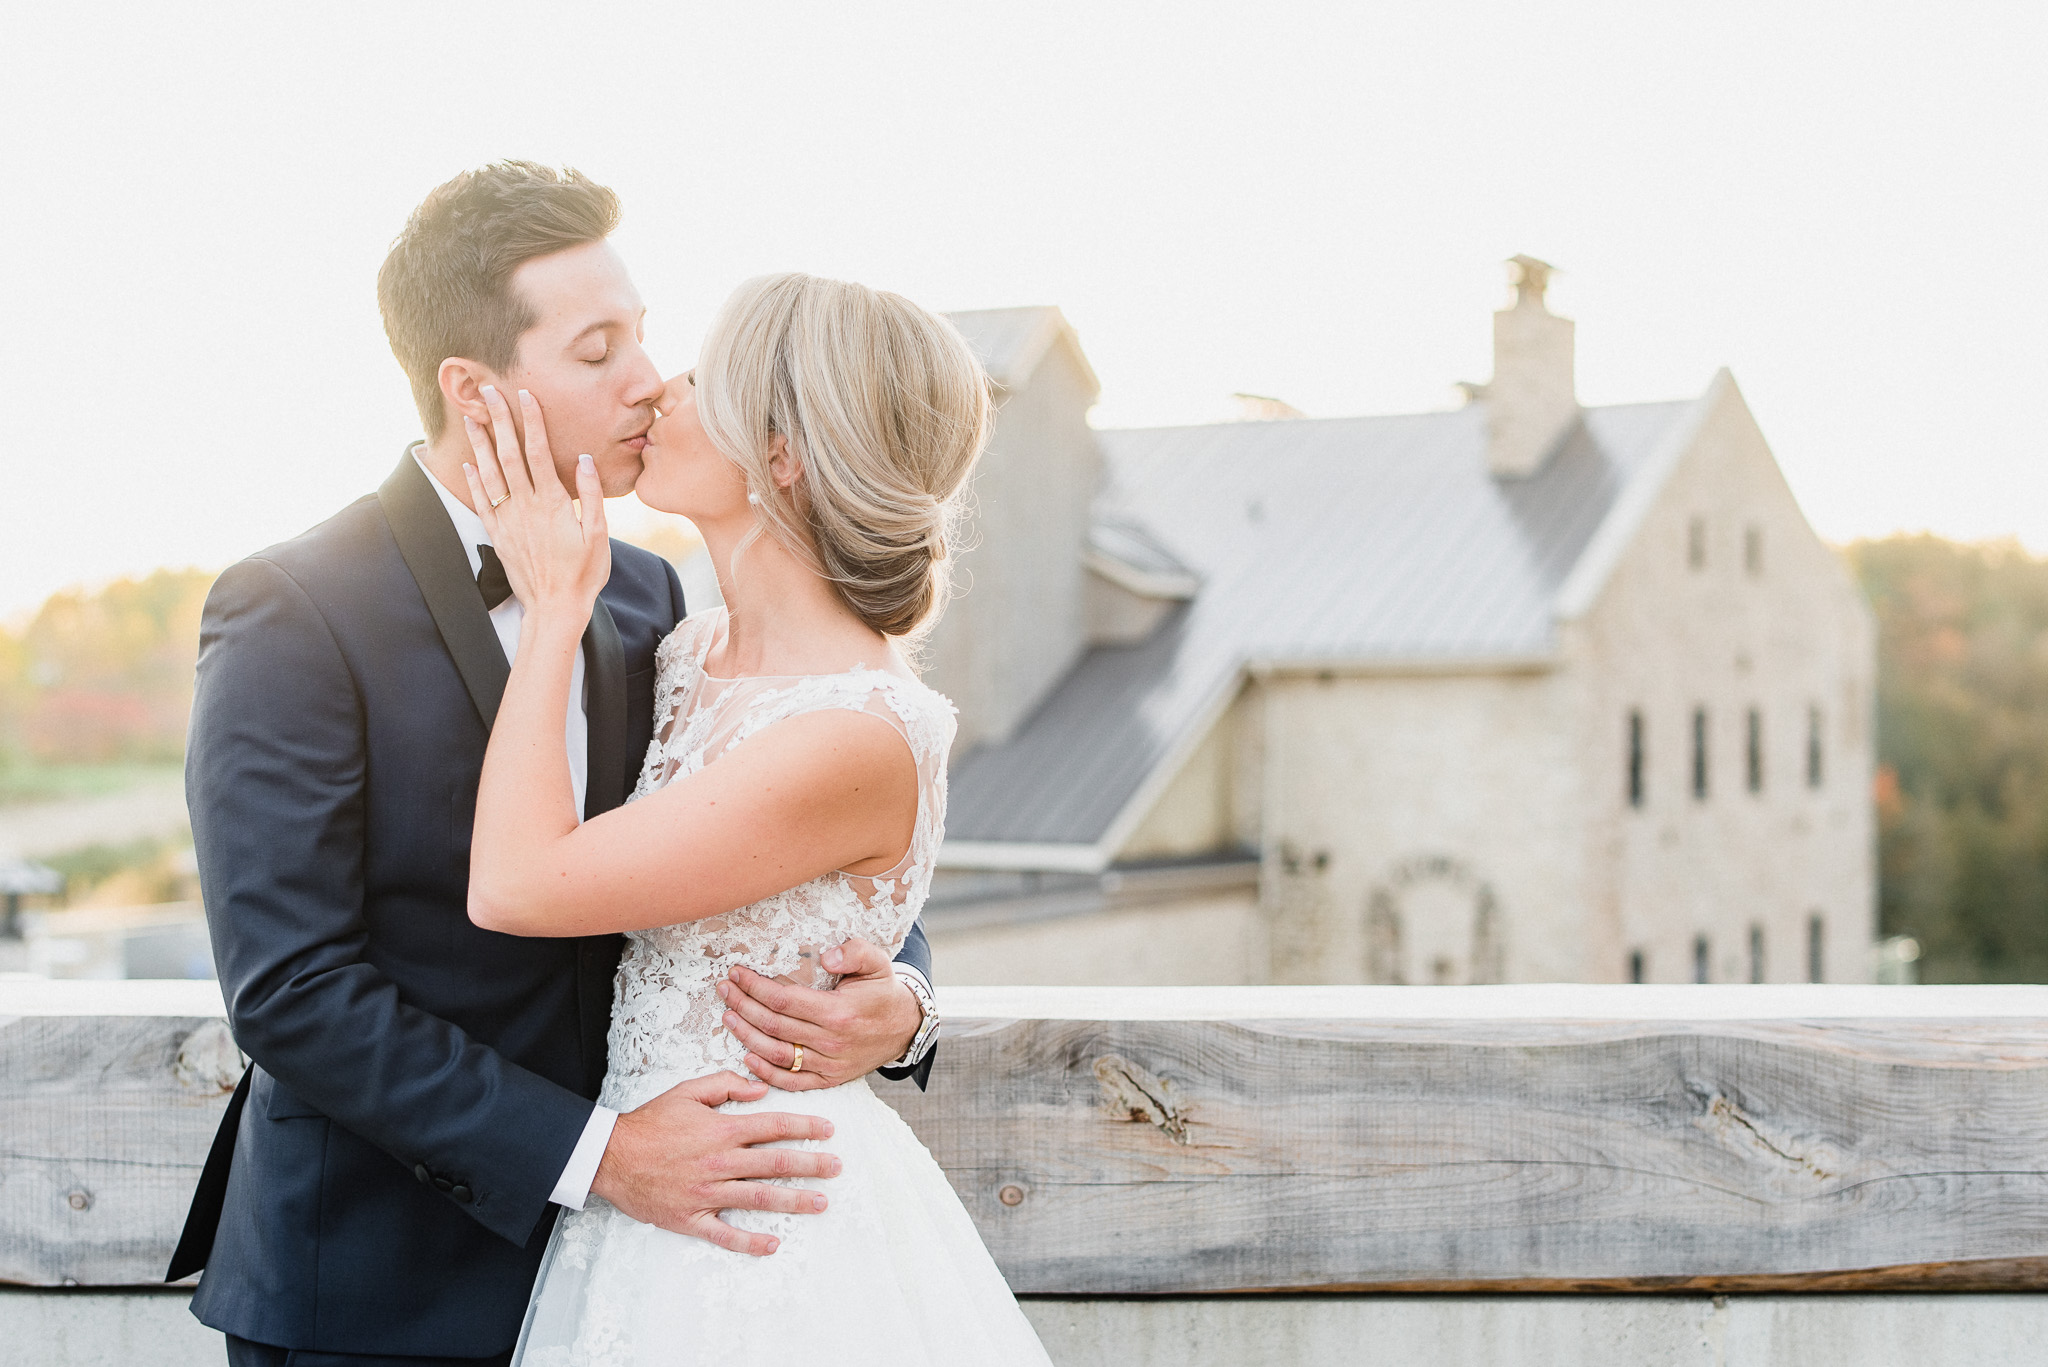 Sunset rooftop wedding photos at Elora Mill| Jenn Kavanagh Photography